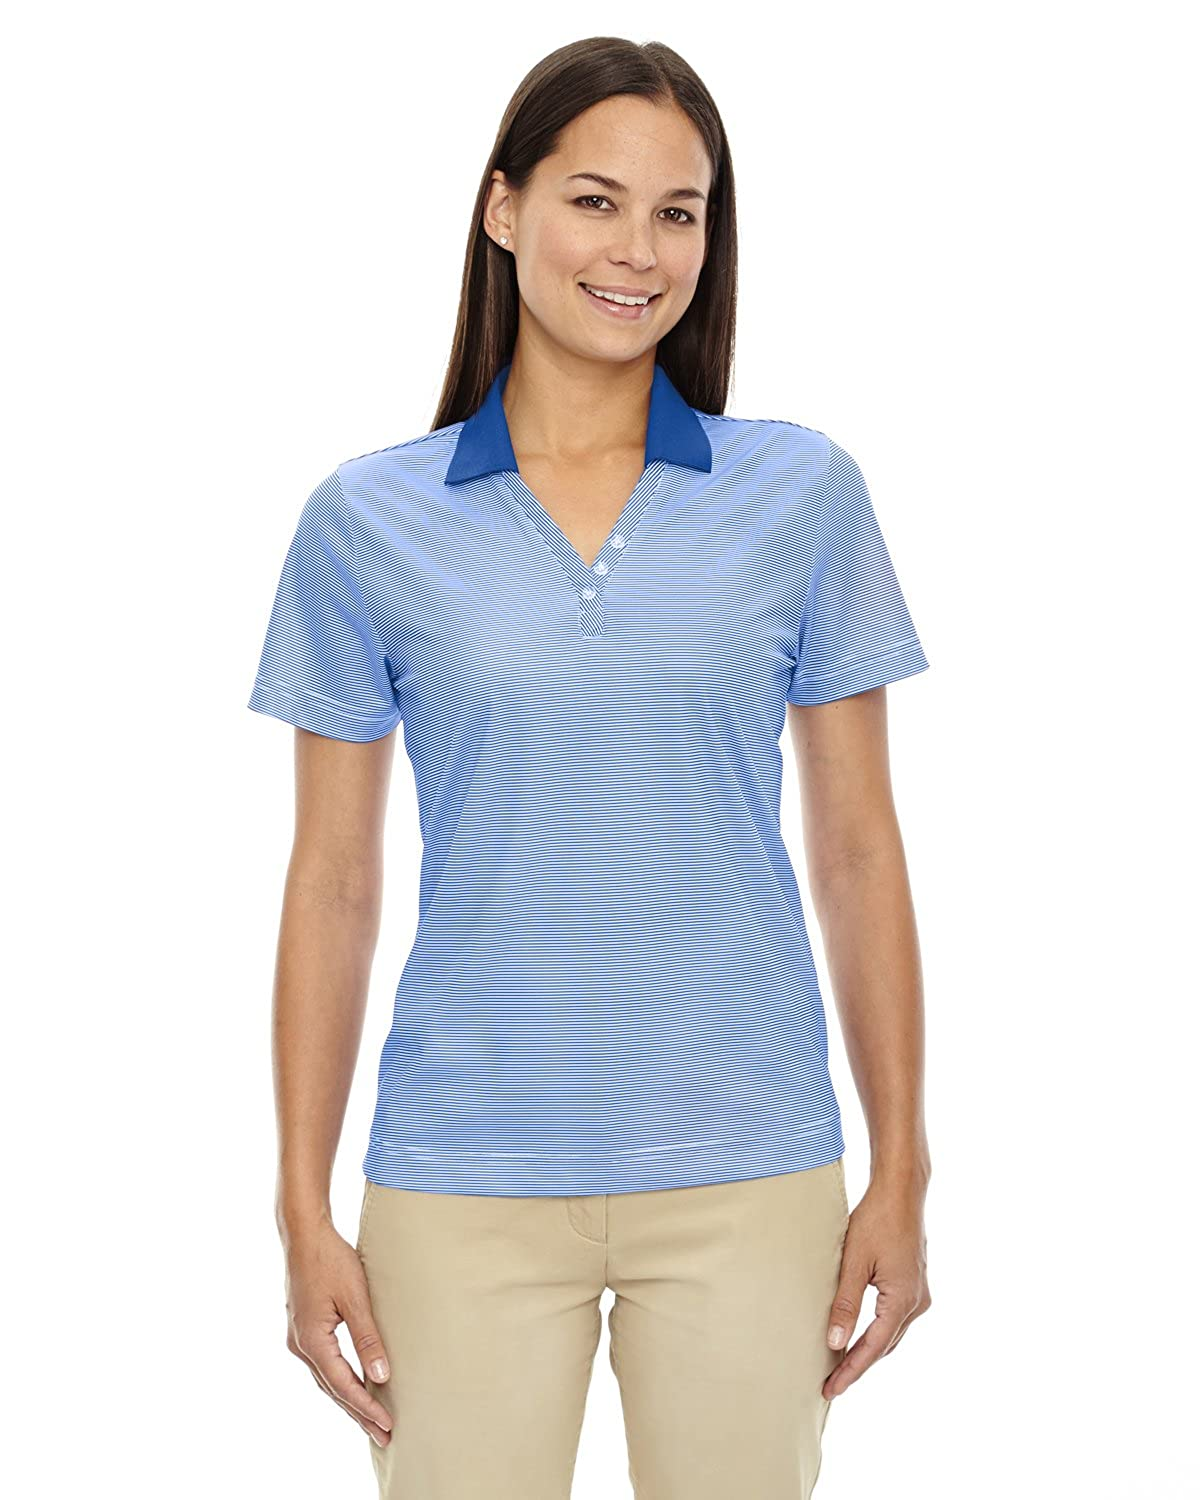 Extreme Eperformance Ladies Launch Striped Polo Shirt